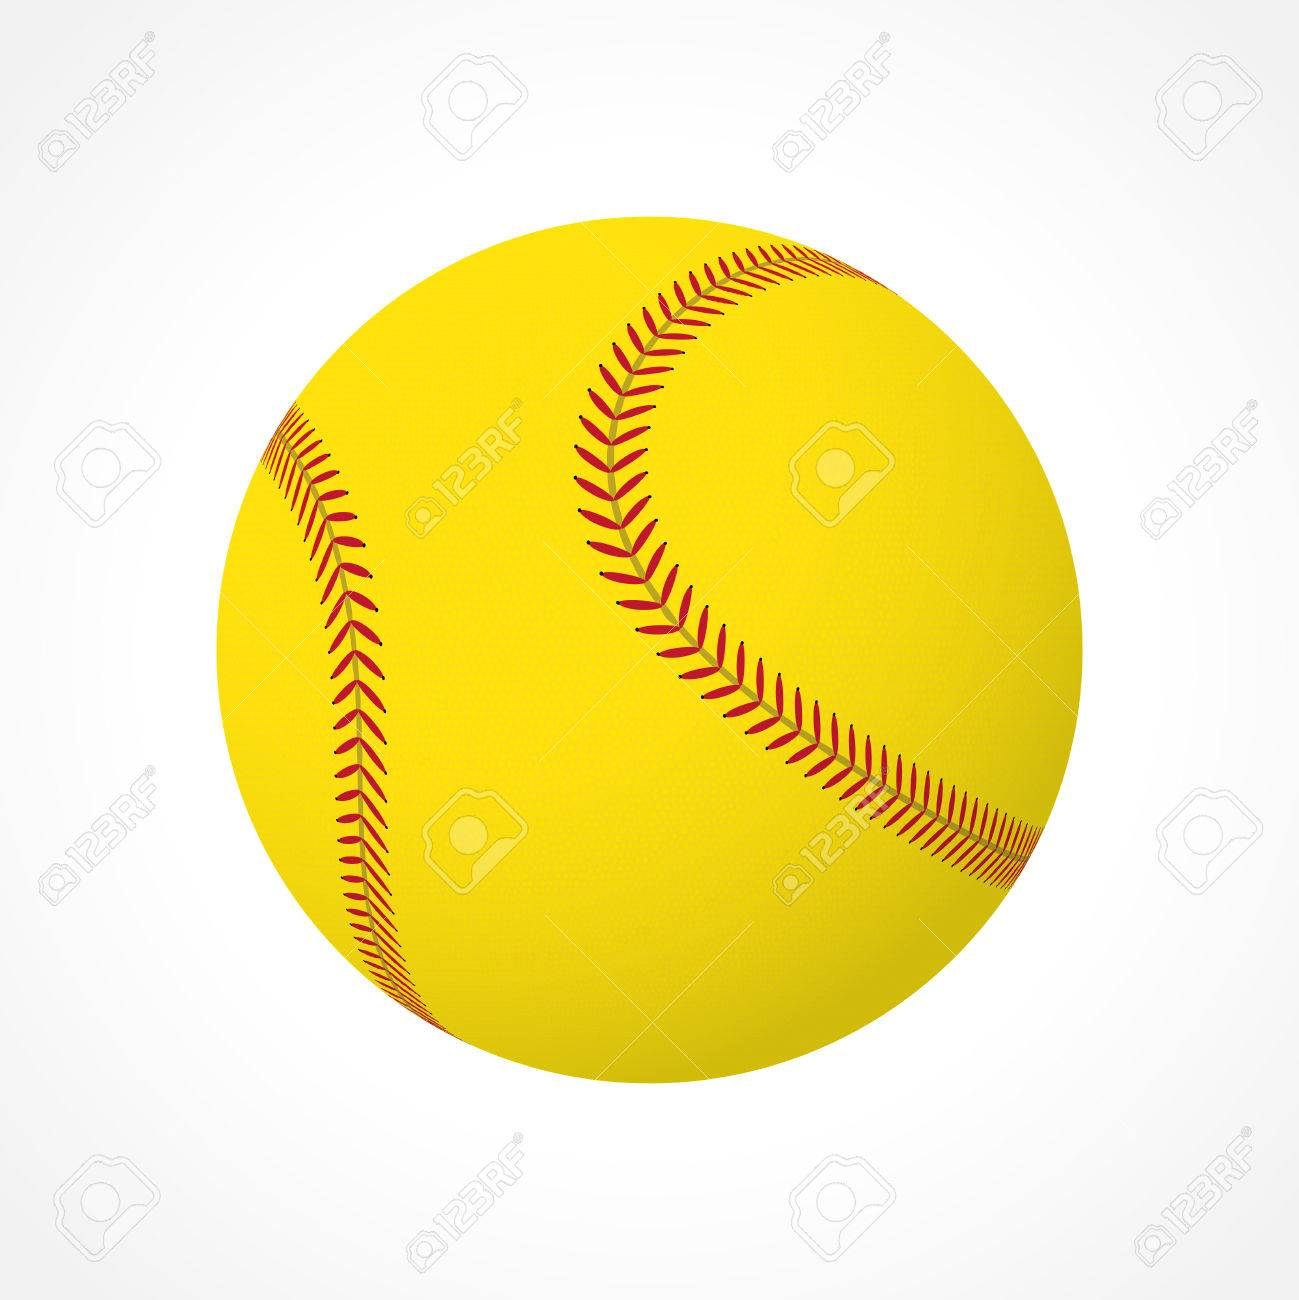 Realistic softball ball isolated on white background.